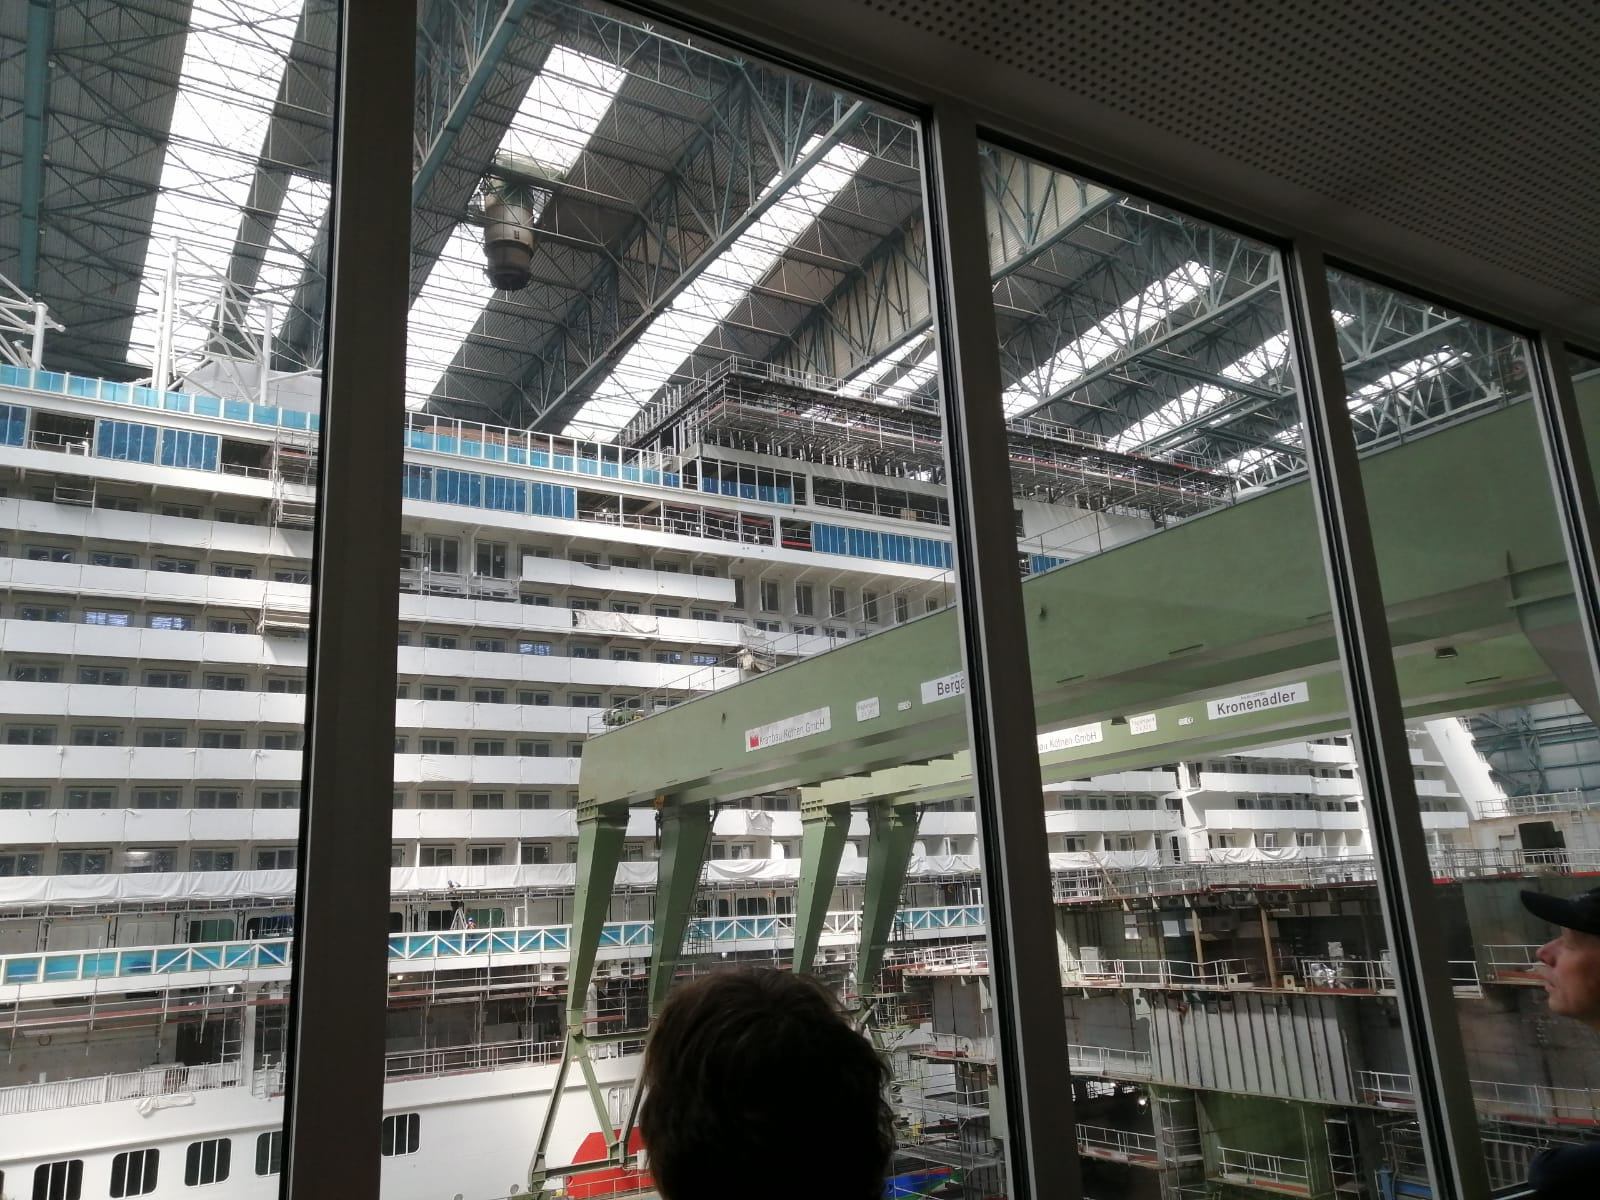 Meyer Werft in Papenburg - Blick in das Baudock/Halle